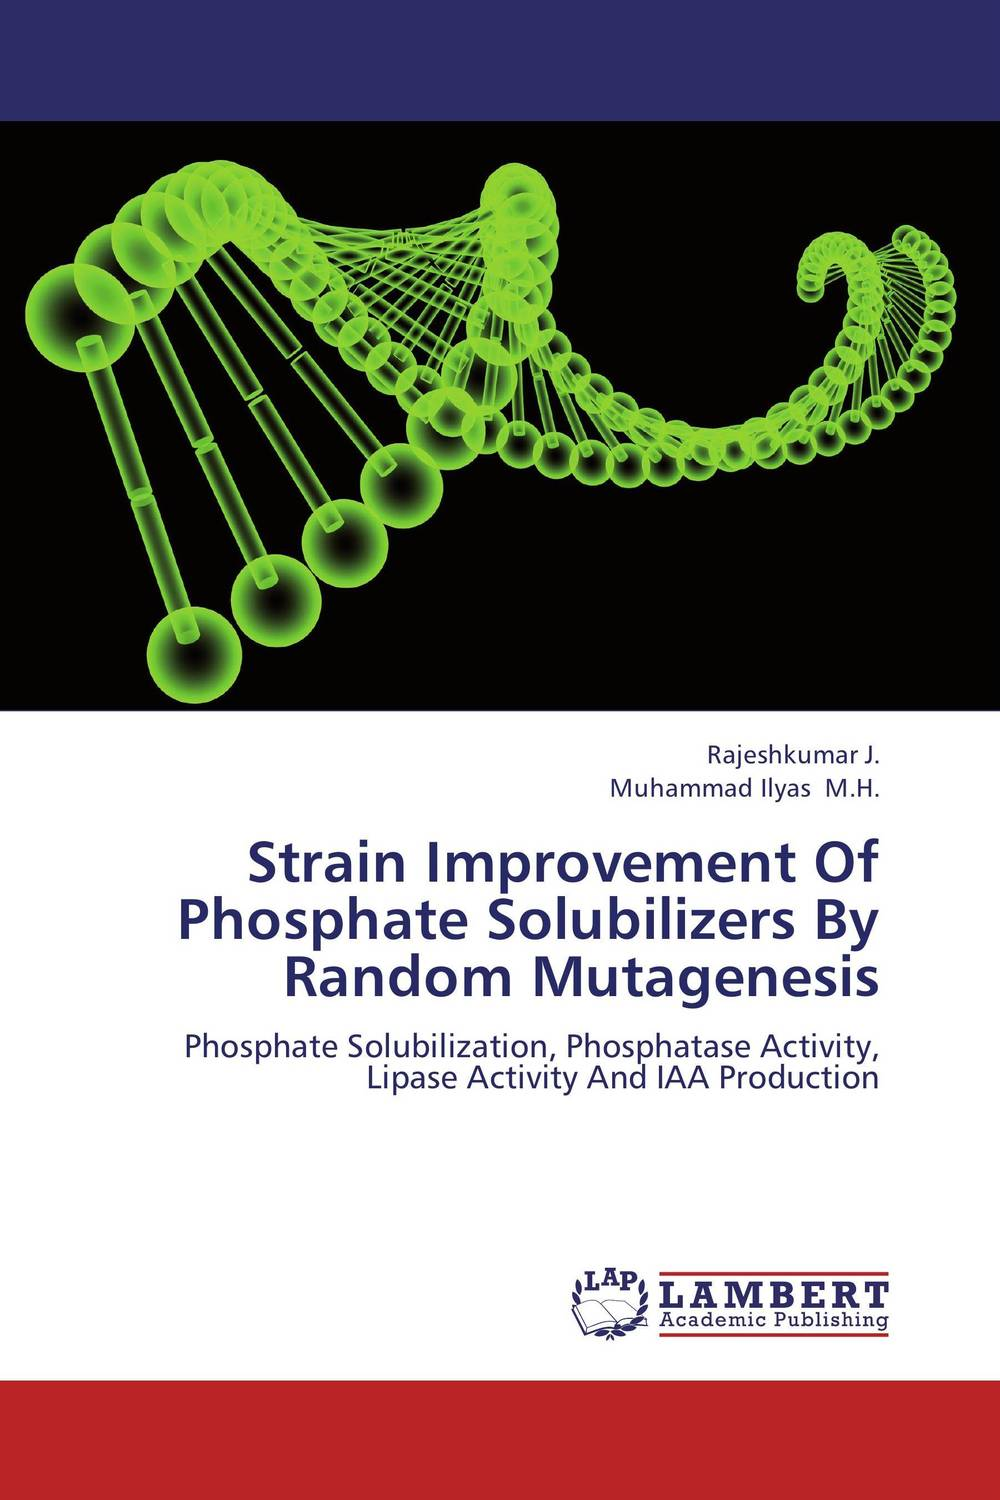 Strain Improvement Of Phosphate Solubilizers By Random Mutagenesis augmented cellulase production by mutagenesis of trichoderma viride